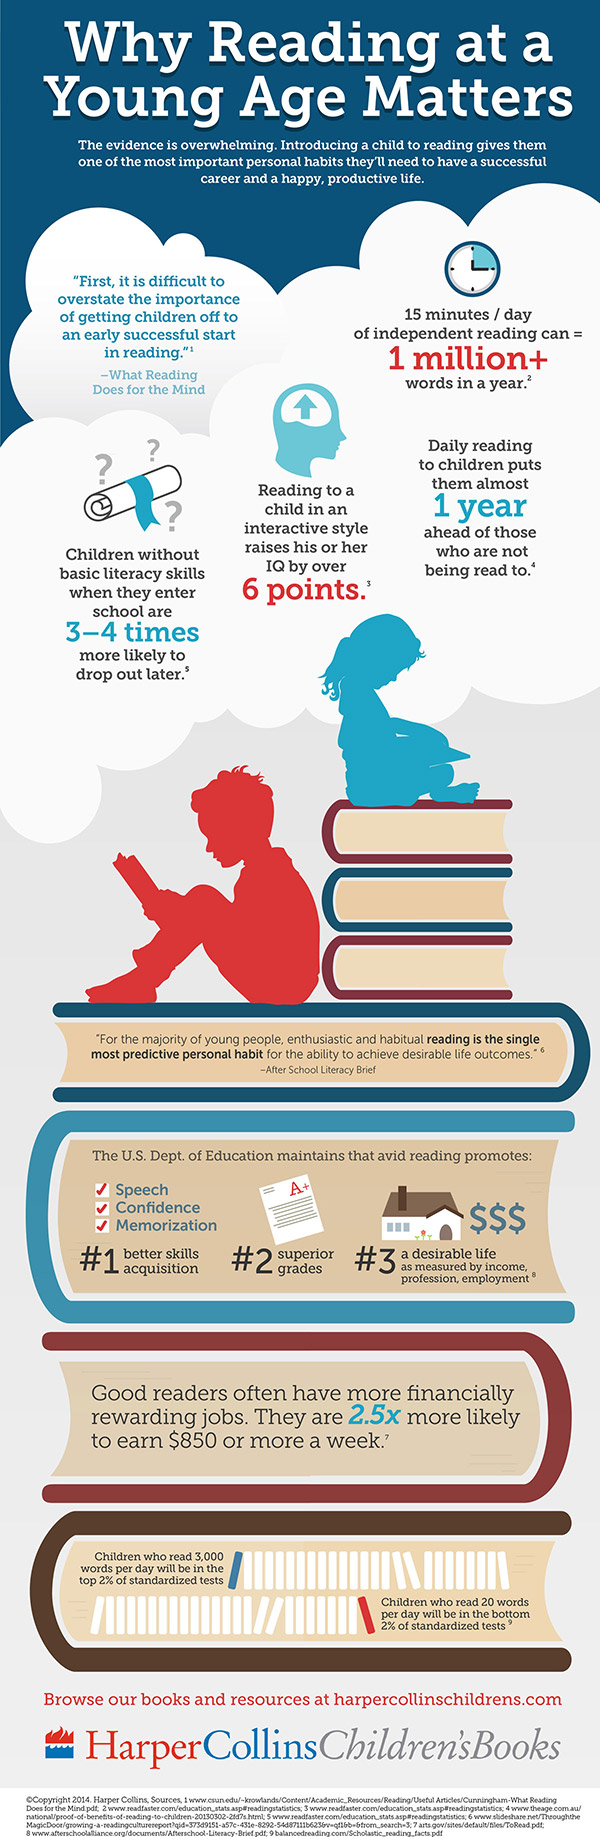 Why Reading Books for Kids is Good